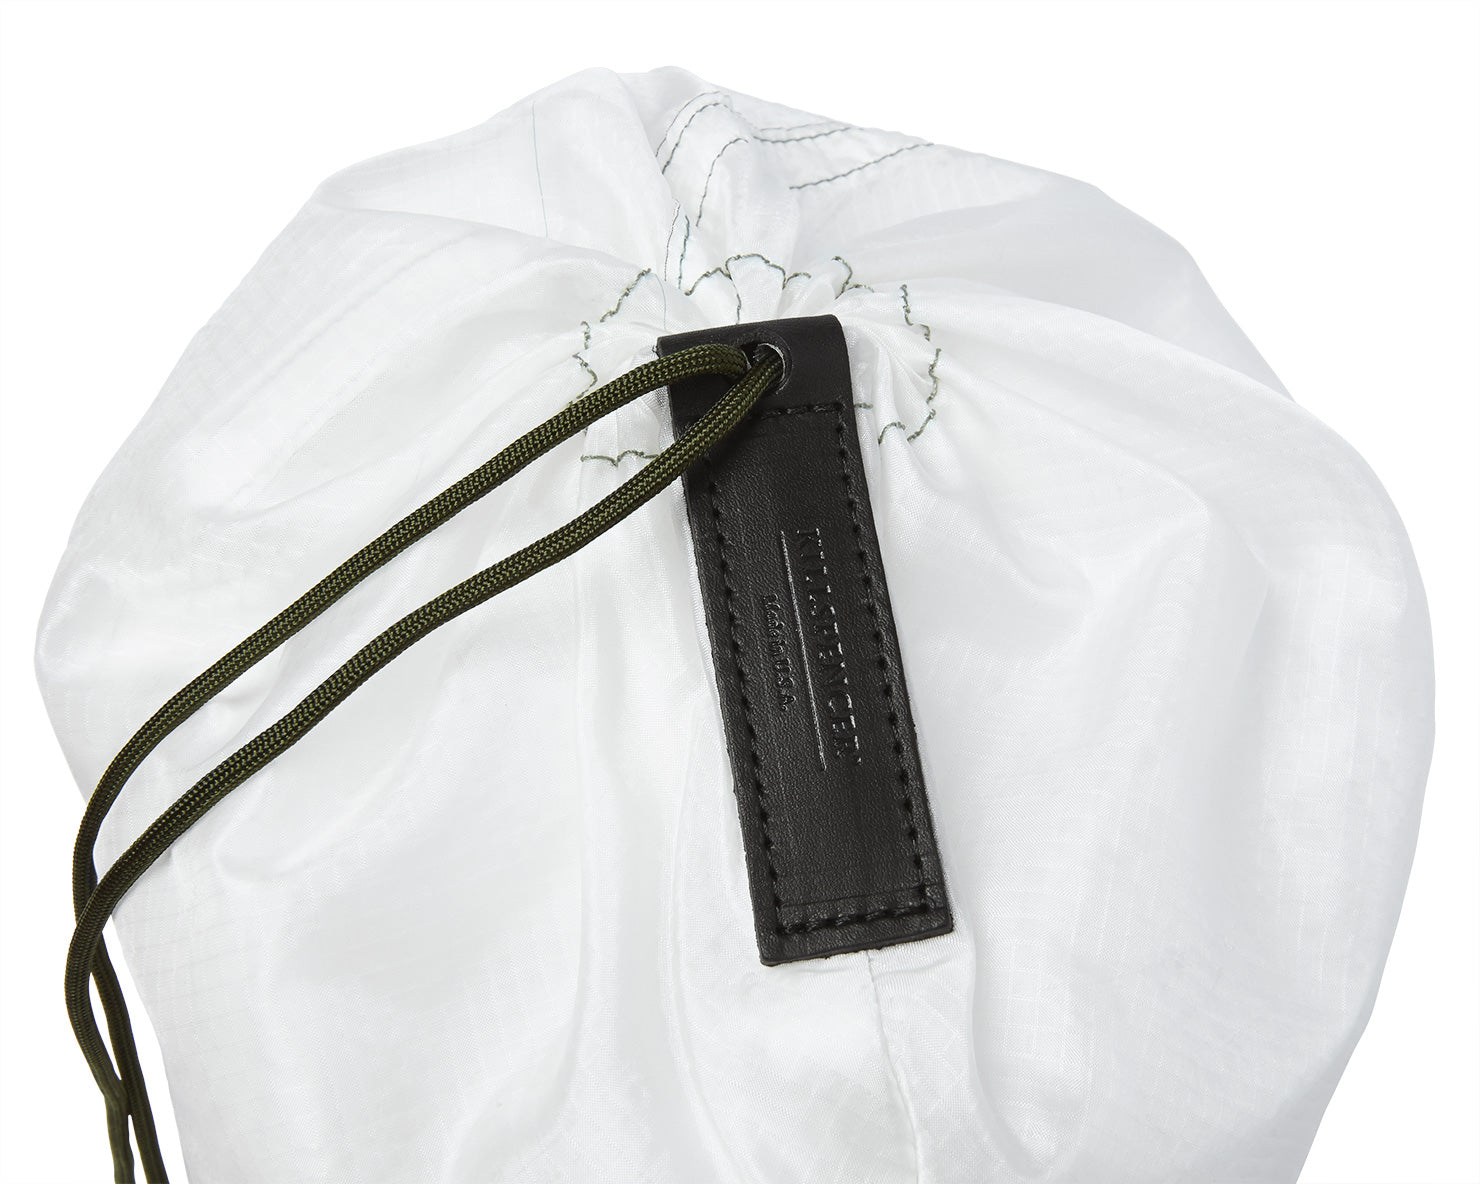 PARACHUTE BAG 2.0 - Laundry Bag | KILLSPENCER® - White Parachute